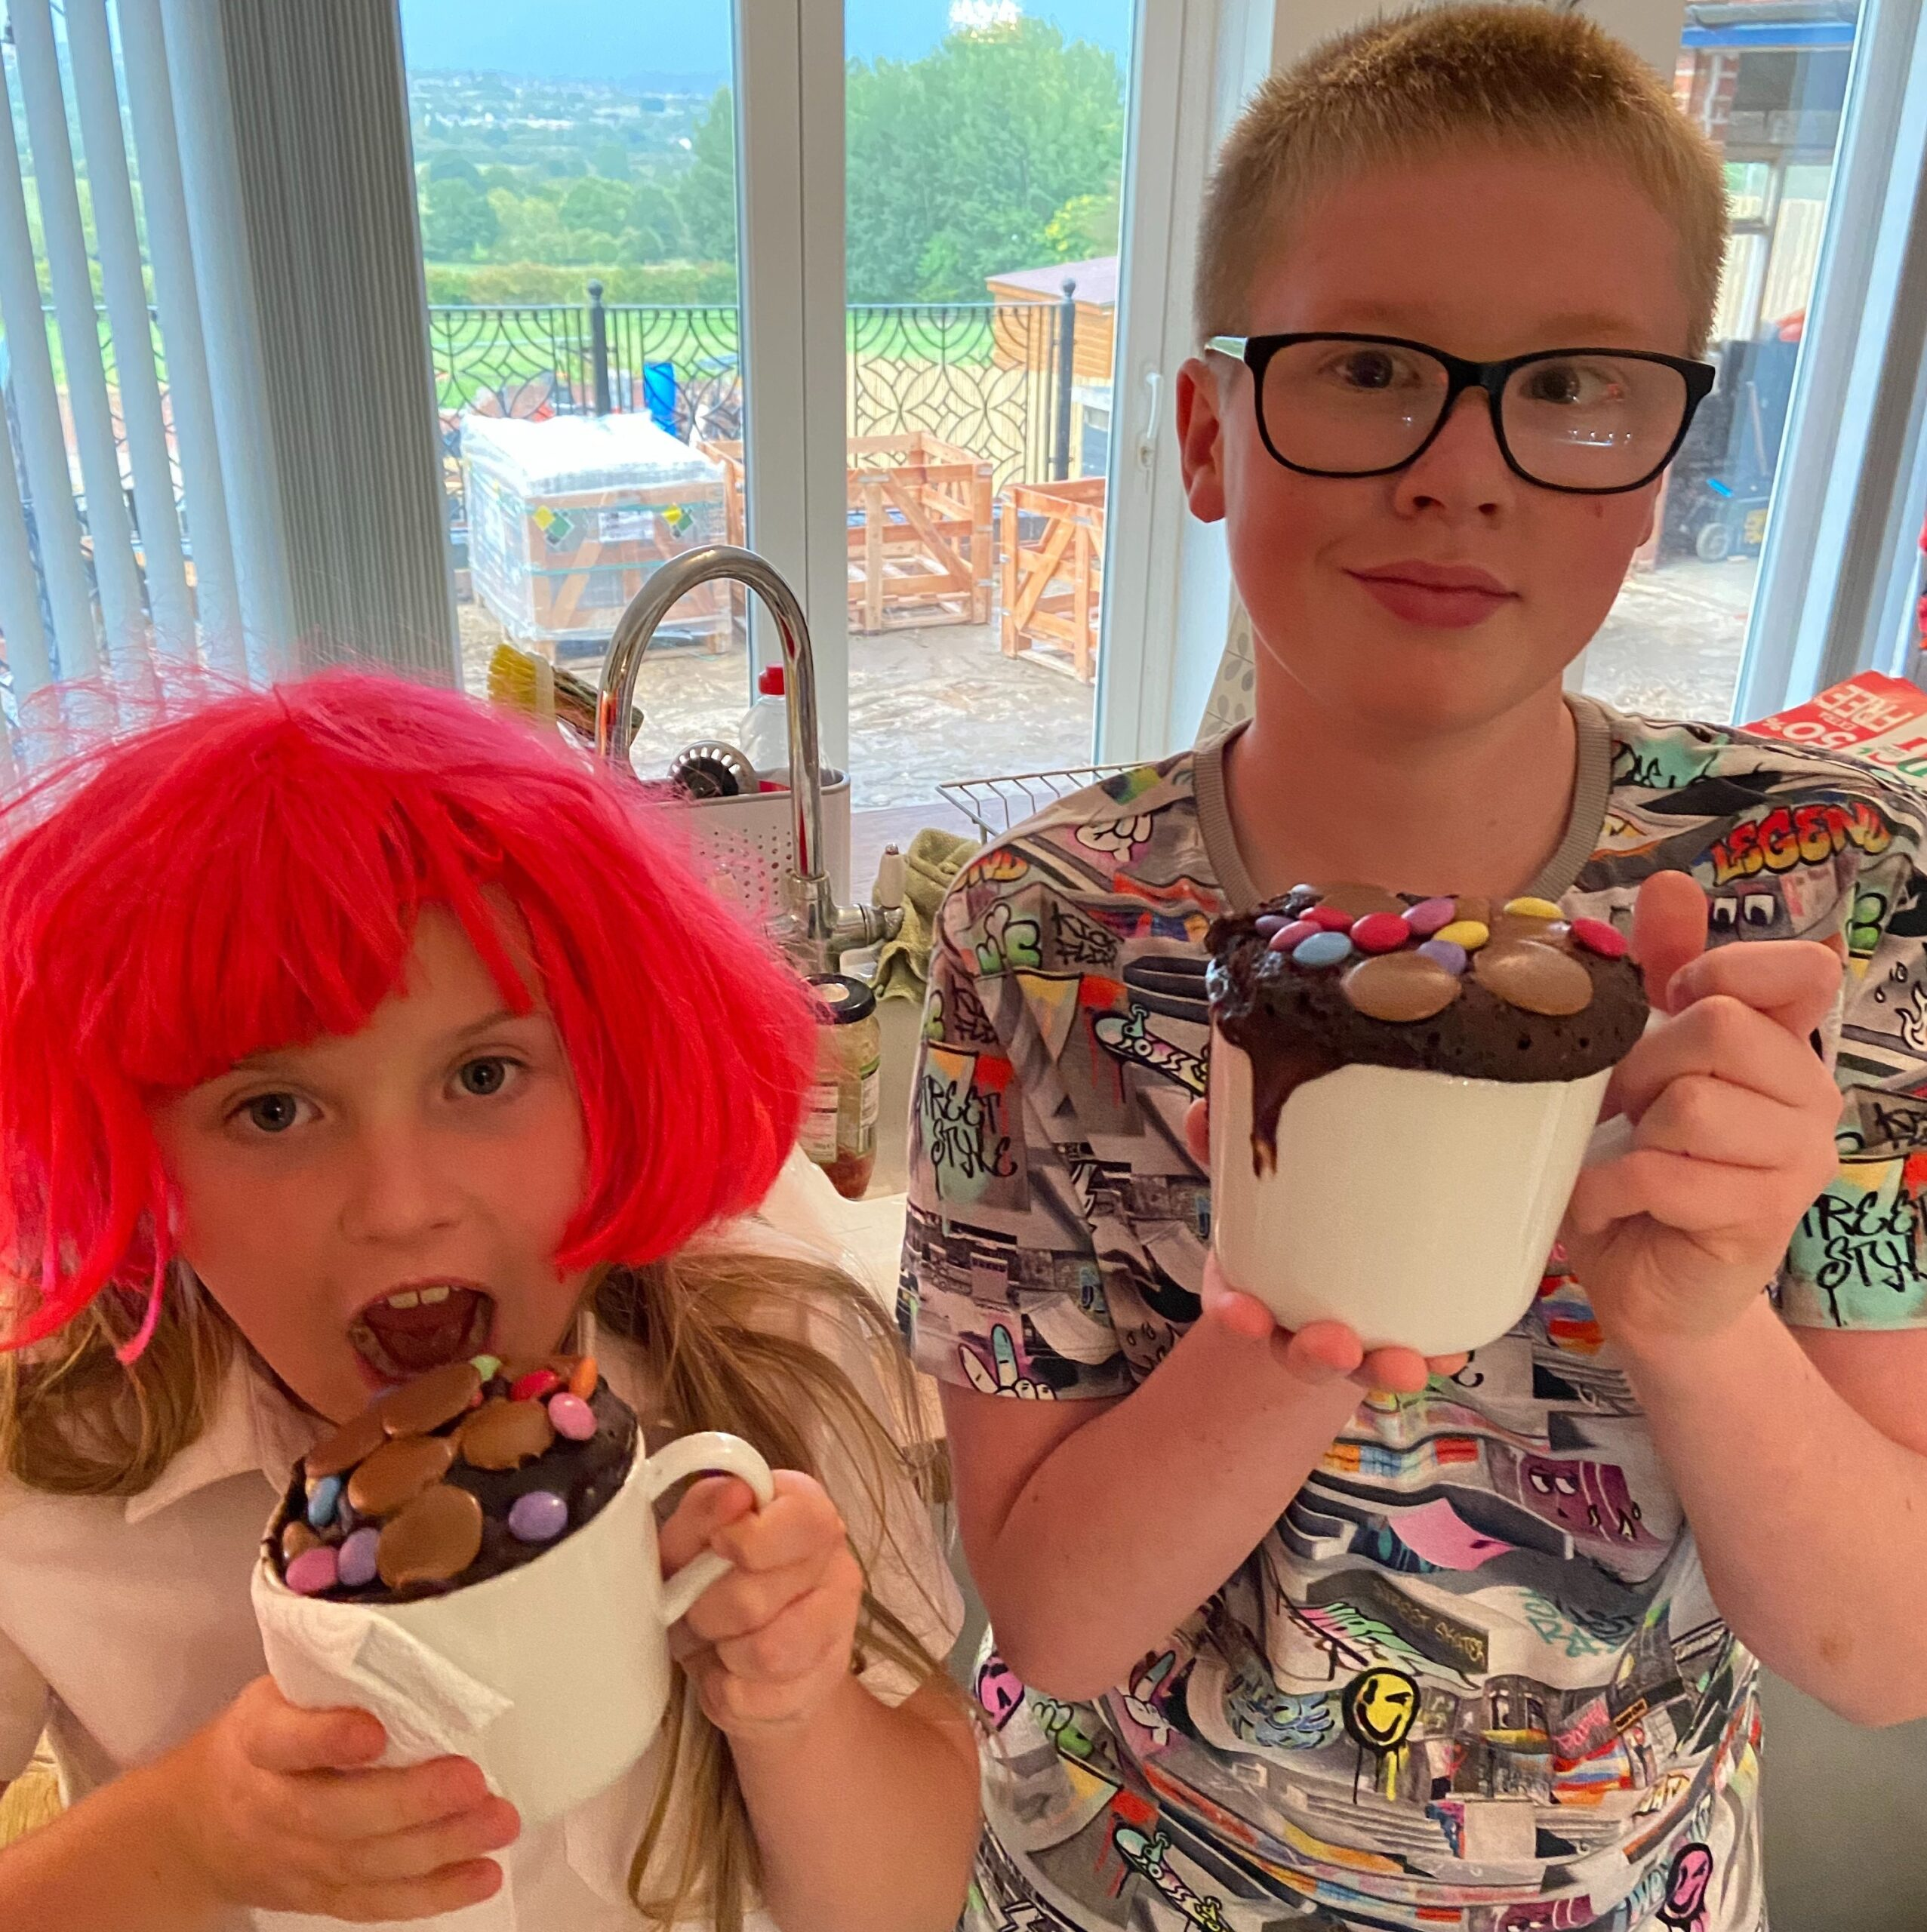 Girl wearing red wig and boy wearing glasses standing proudly with their mug cakes